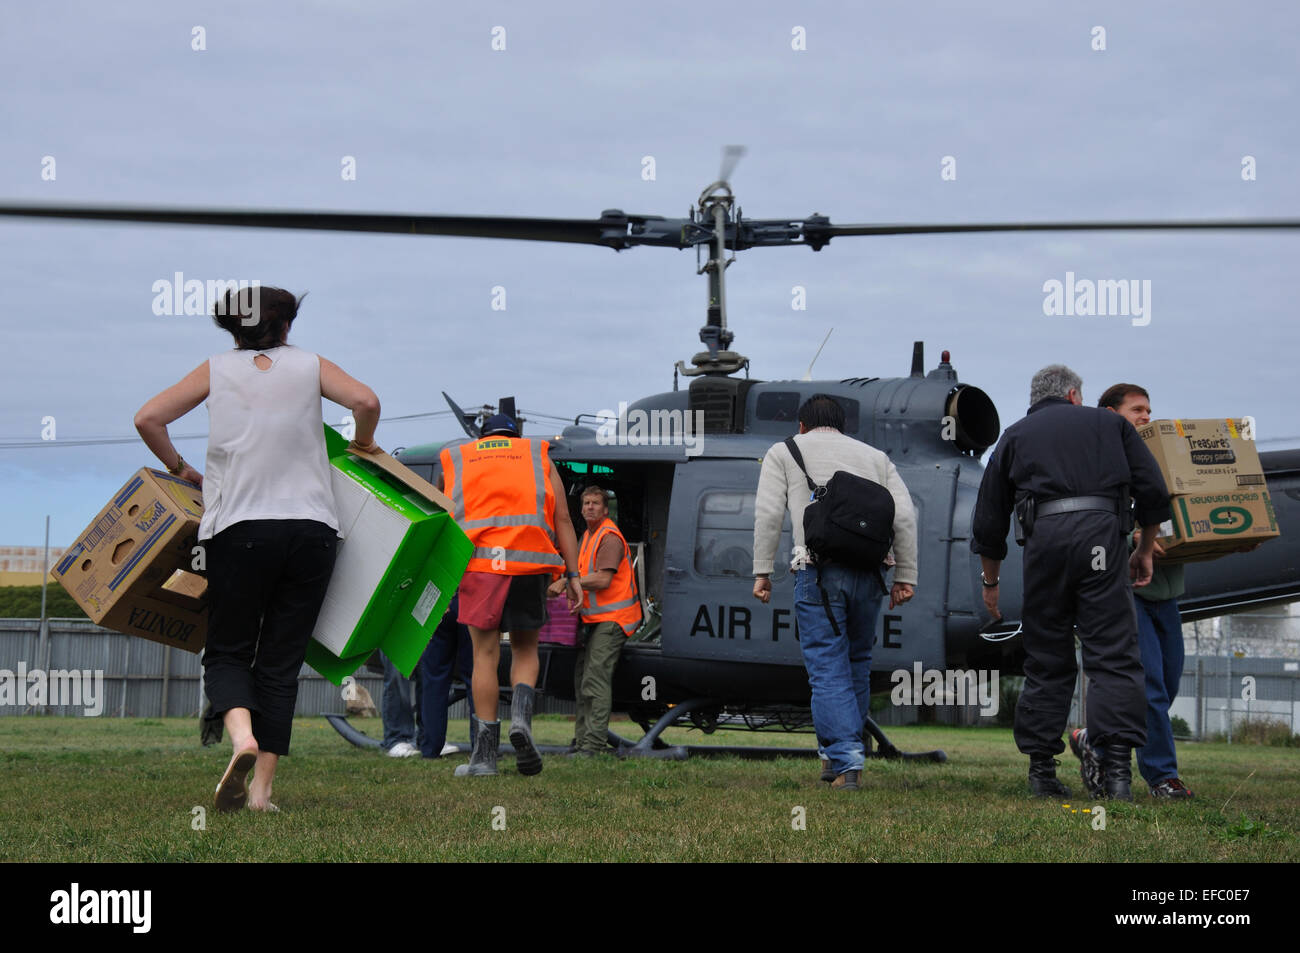 Disaster Relief Stockfotos & Disaster Relief Bilder - Alamy